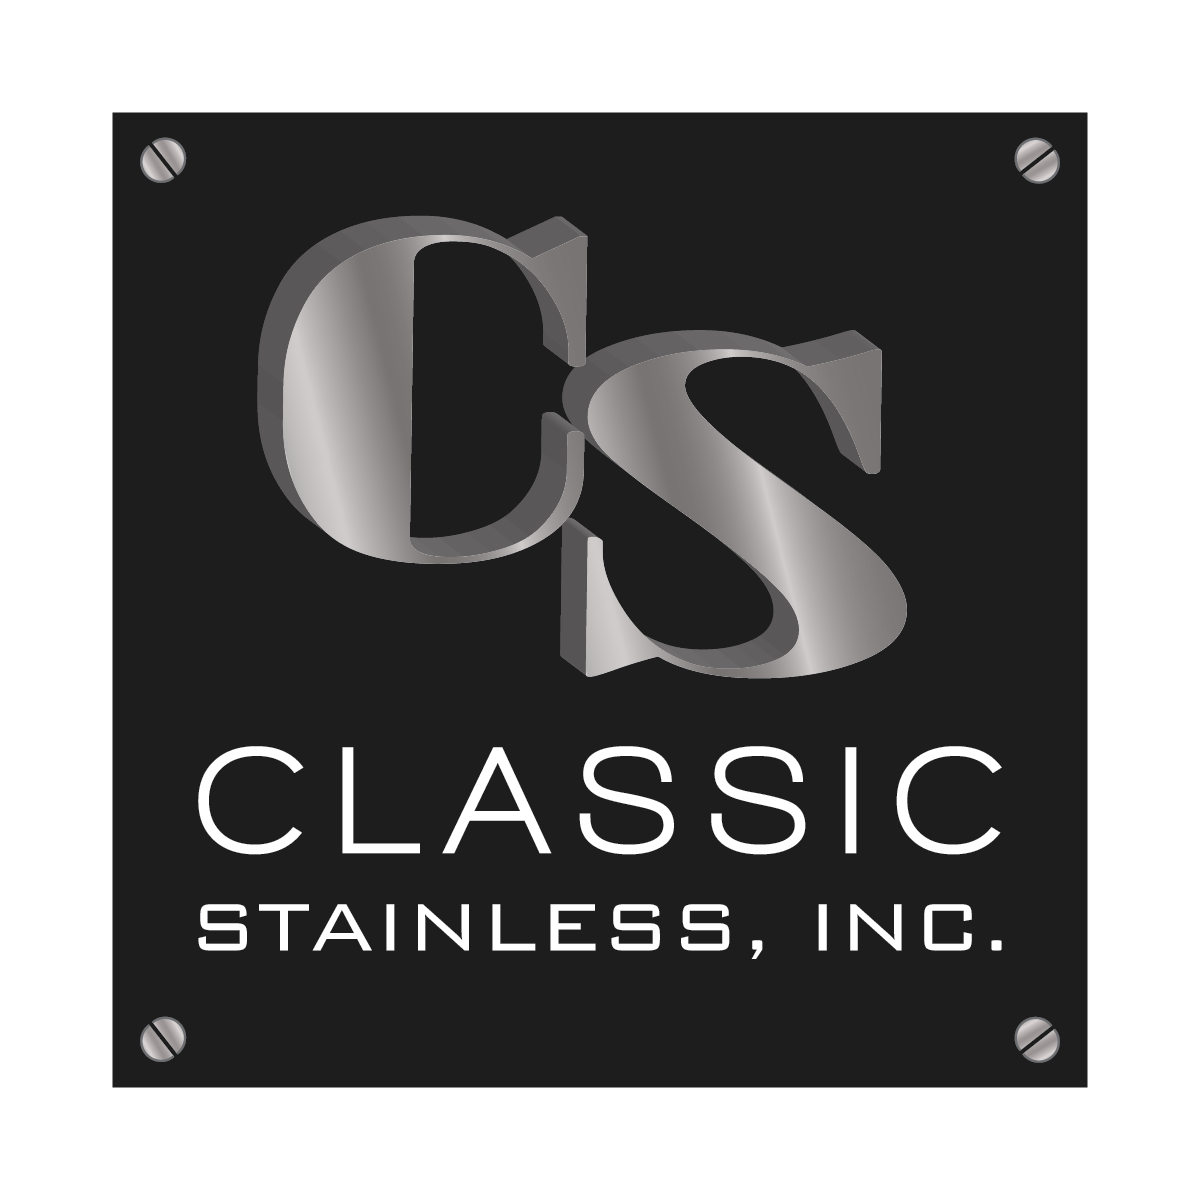 Classic Stainless